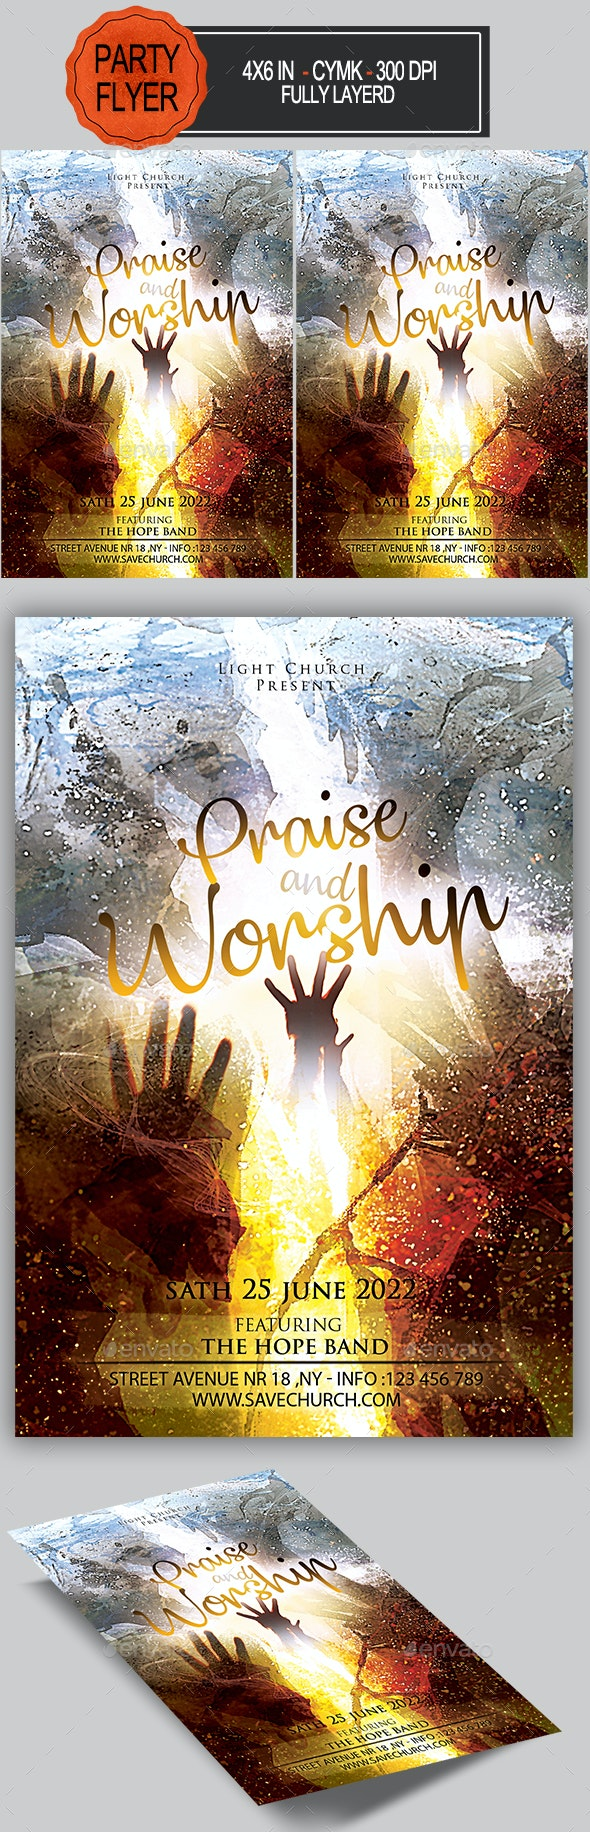 Worship and Praise Flyer - Church Flyers